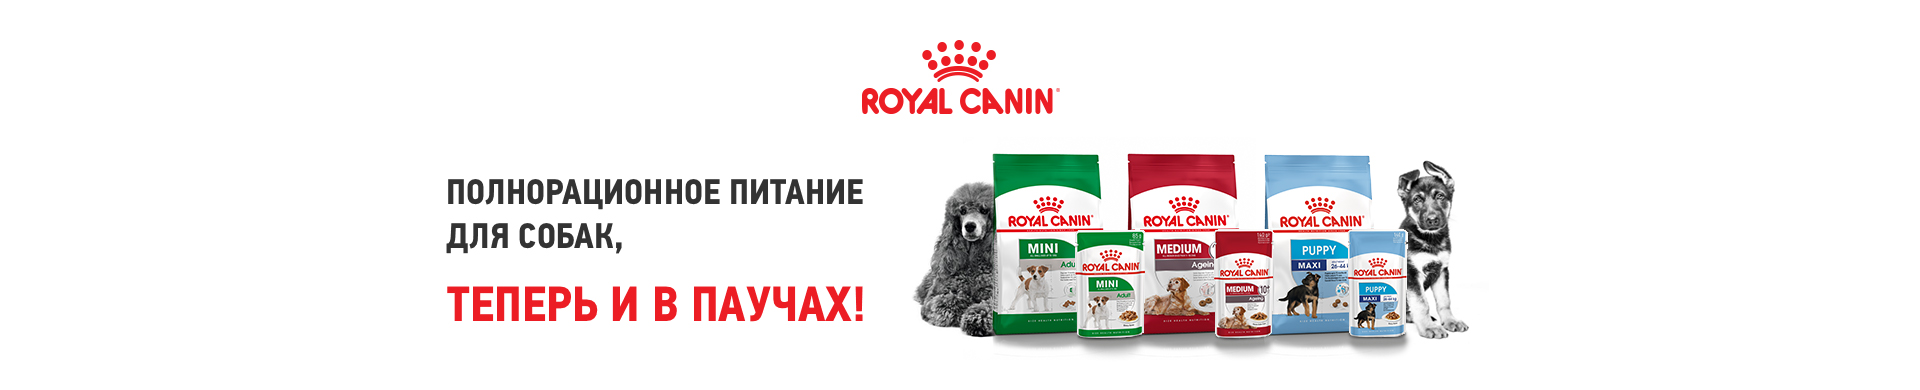 Royal Canin паучи